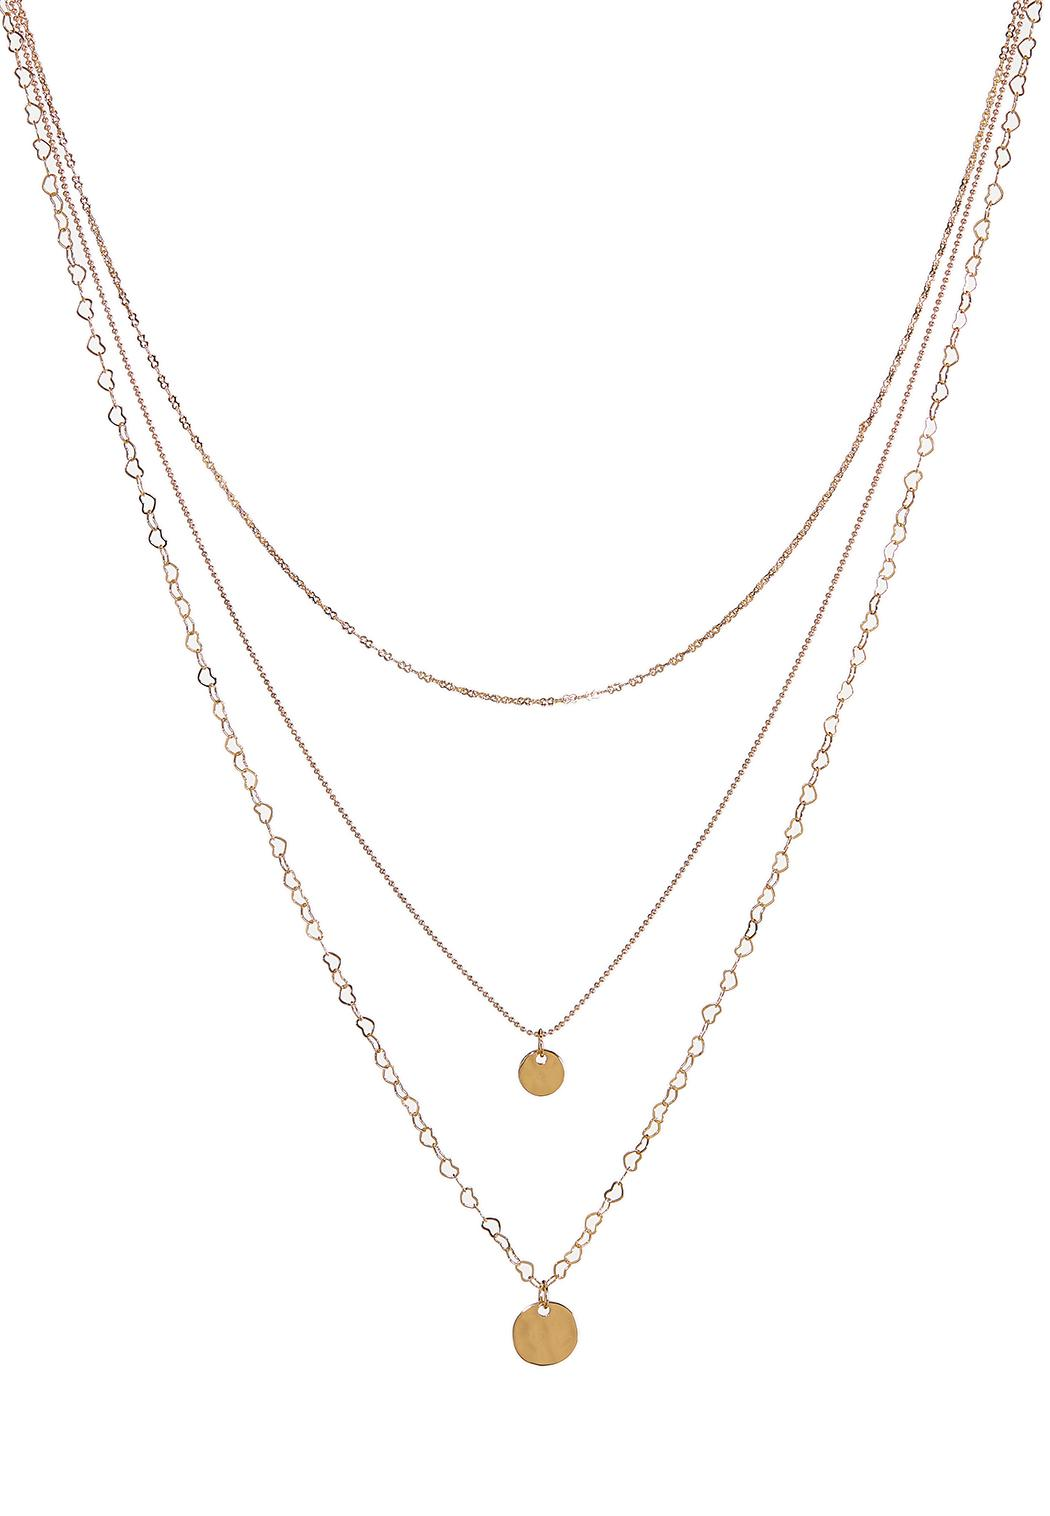 Delicate Layered Disc Chain Necklace